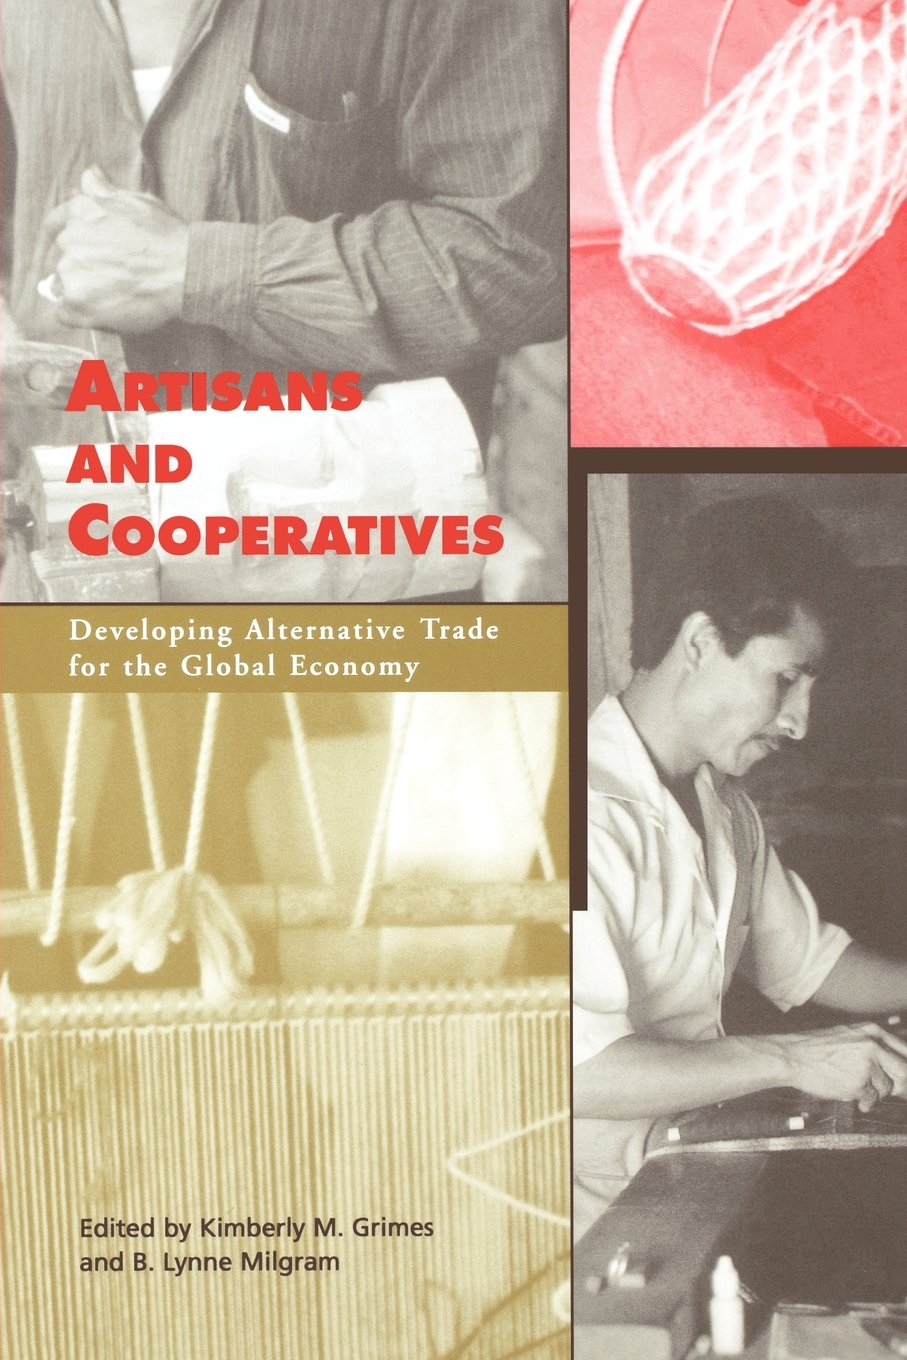 artisans-and-cooperatives-developing-alternative-trade-for-the-global-economy